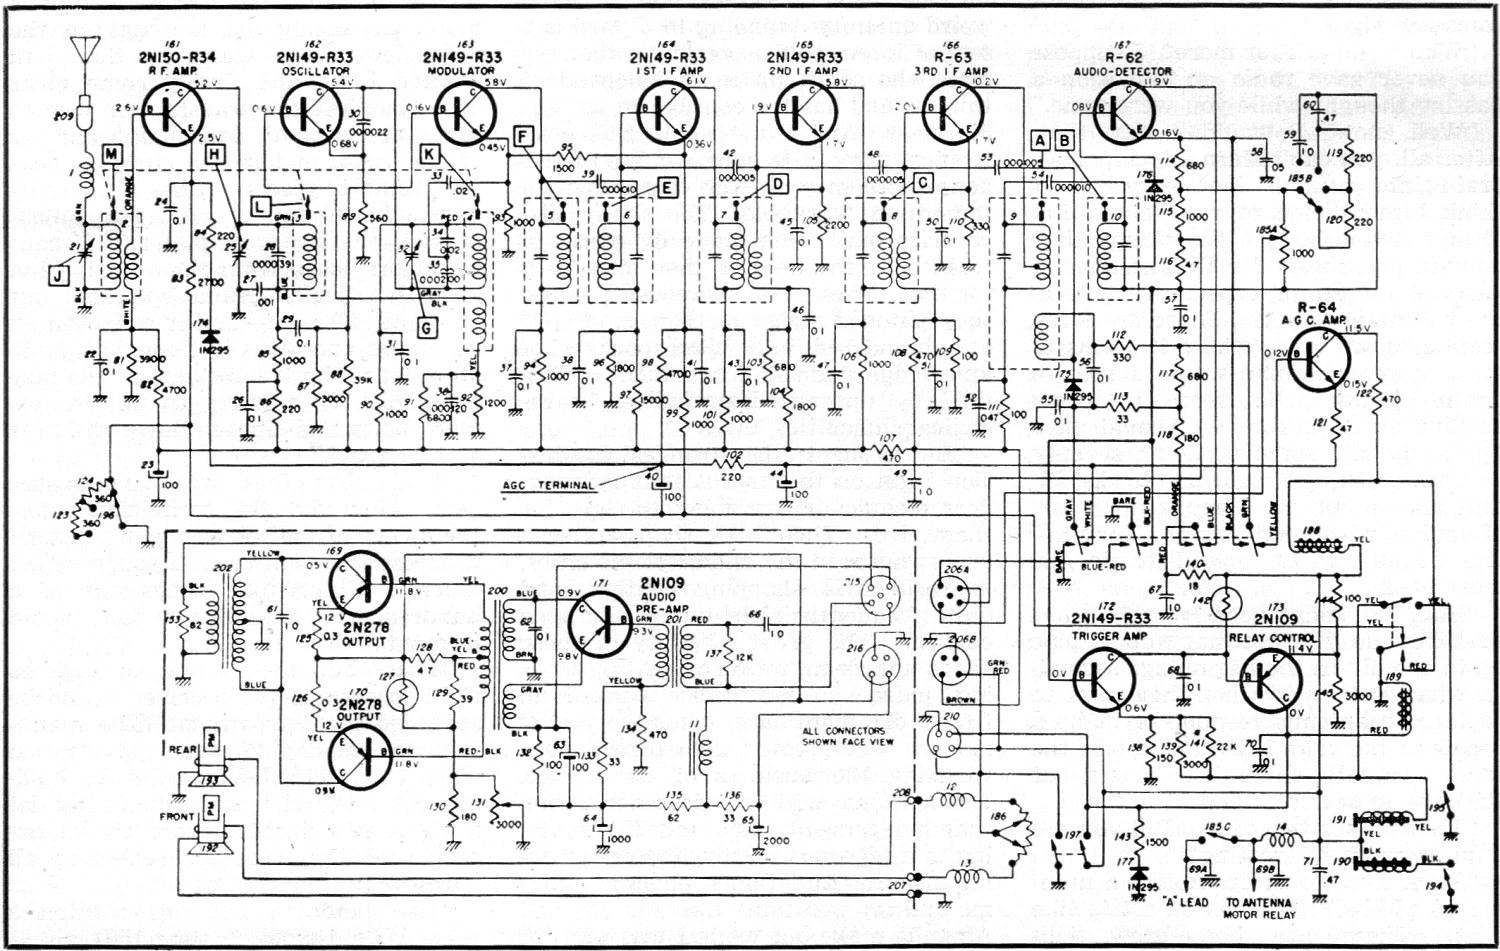 Jl Audio Subwoofer Wiring Diagram likewise Rockford Subwoofer Wiring Diagram furthermore Jbl Theater Systems besides Polk Audio Pa660 Wiring Diagram likewise Kawasaki Fd750d Service Manual Wiring Diagrams. on polk audio subwoofer wiring diagram